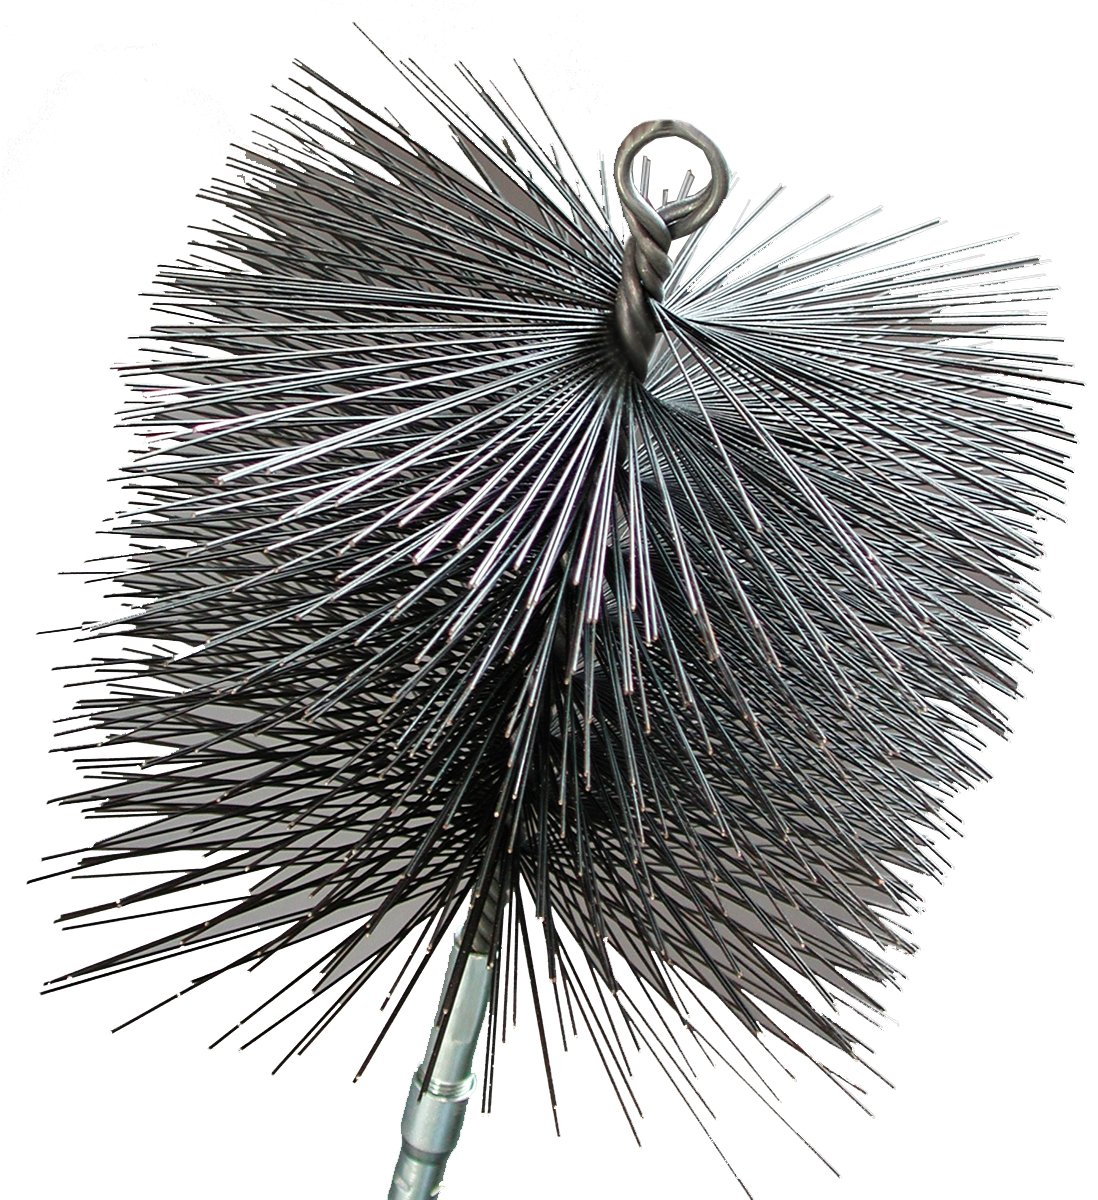 Rutland Products 16508 8-Inch Square Chimney Cleaning Brush by Rutland Products